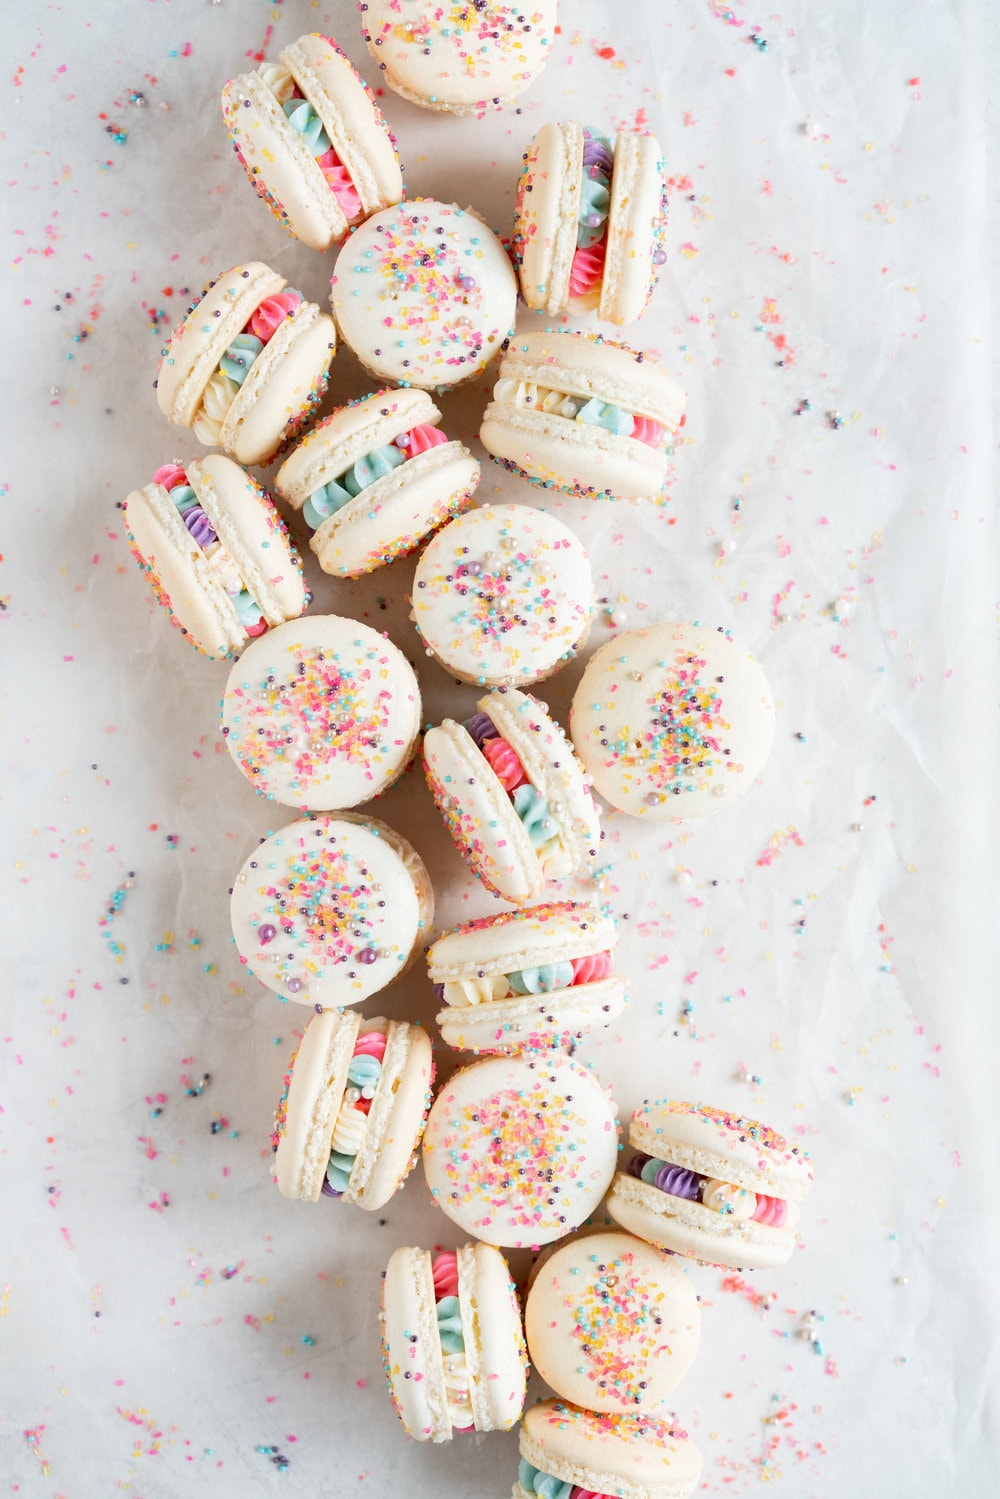 New Year's Macarons with Vanilla Bean Swiss Meringue Buttercream and Pop Rocks. Light, sparkly, and perfect for ringing in the new year.